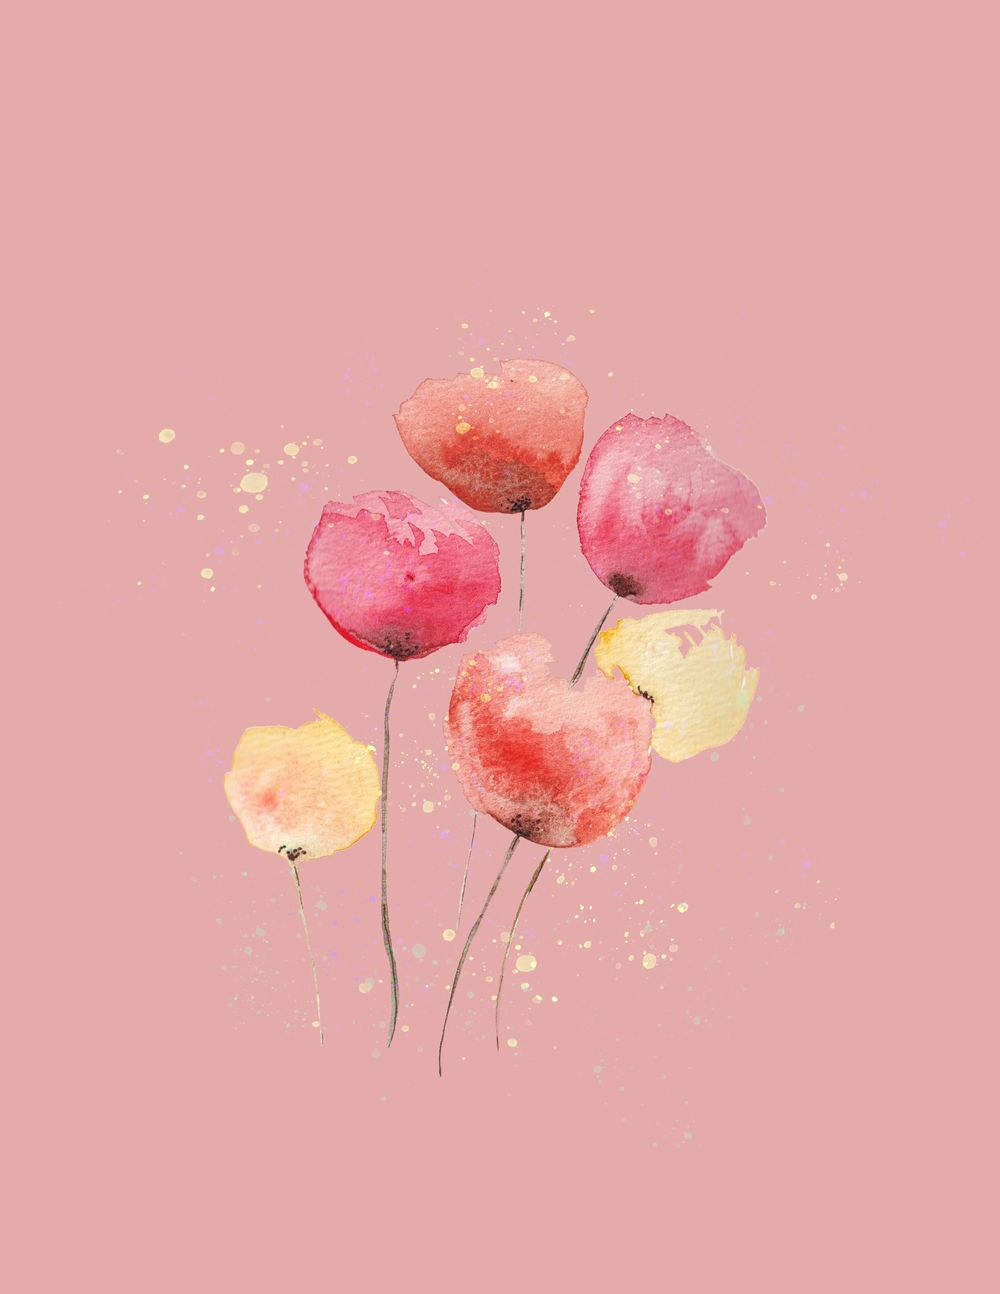 Cheerful flowers - image 1 - student project